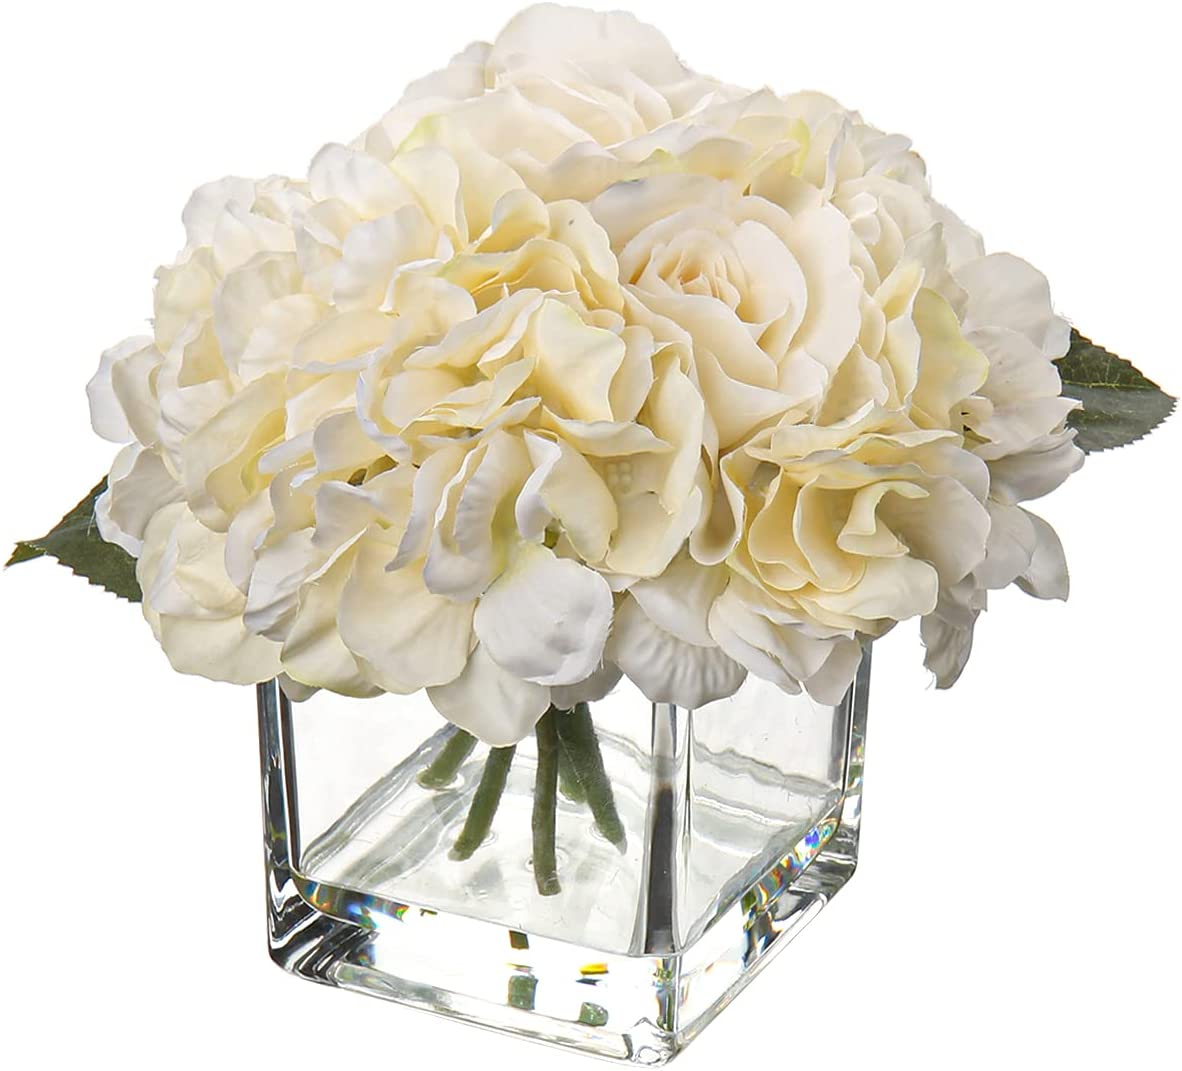 Dining Table Centerpieces Artificial Rose Hydrangea in Vase with Faux Water for Farmhouse Decor Wedding Home Kitchen Decoration- Cream Flowers Cream Decor